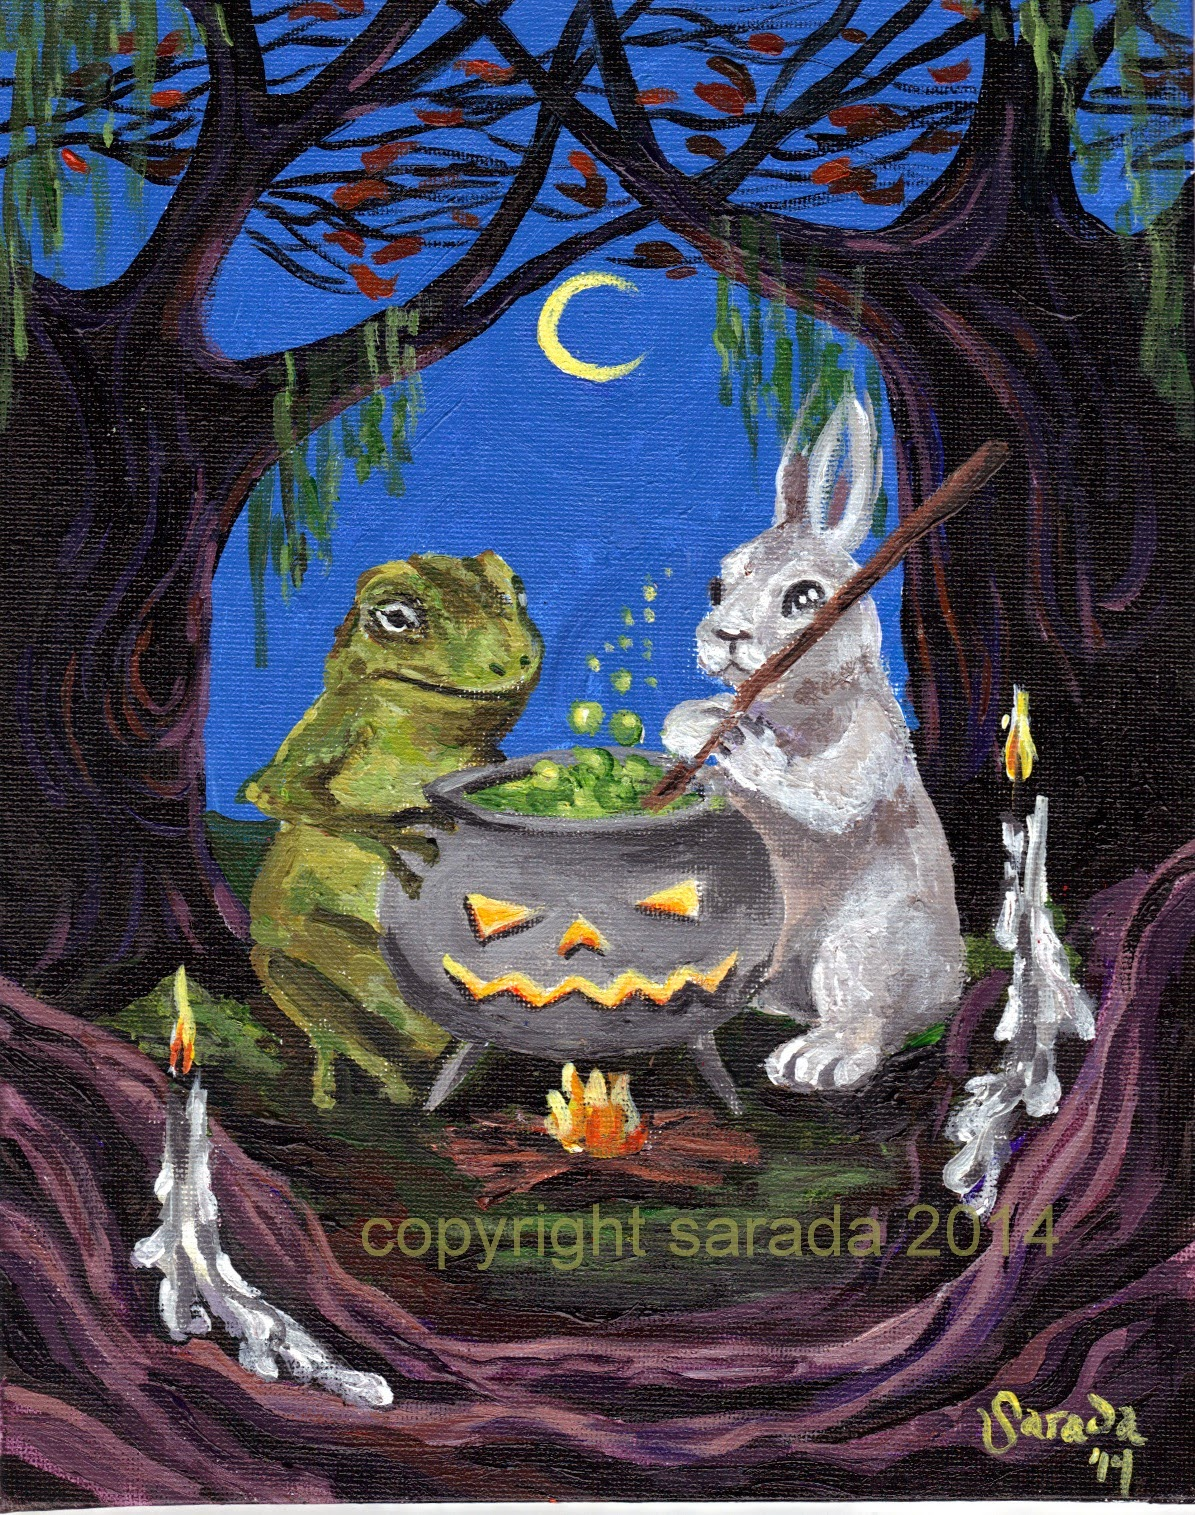 https://www.etsy.com/listing/199579792/halloween-art-print-choice-of-5-x-7-or-8?ref=shop_home_active_3